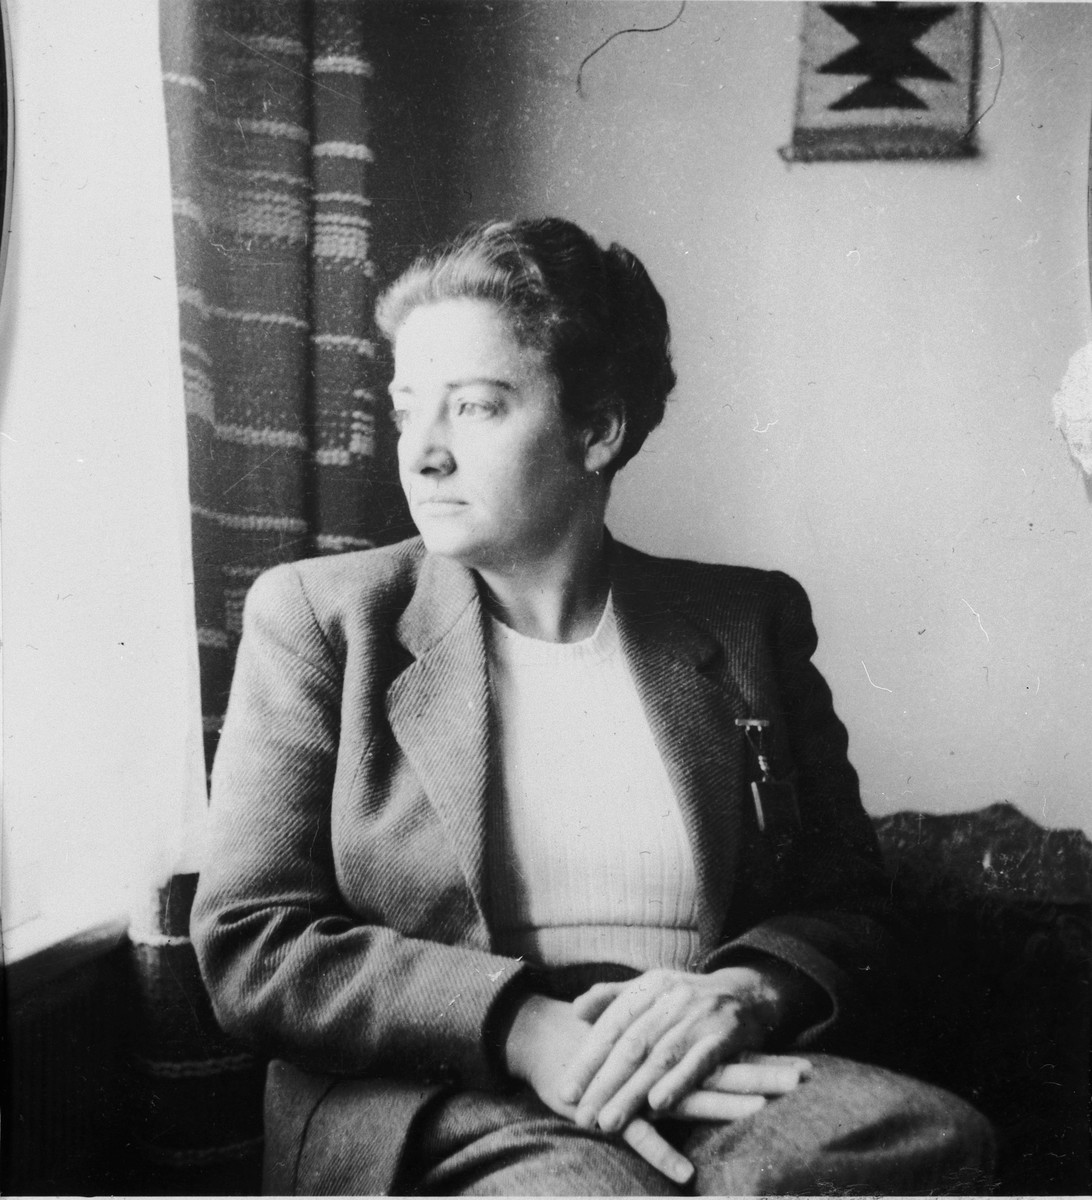 Portrait of Frieda Belinfante after her return to the Netherlands from the refugee camp in Switzerland.